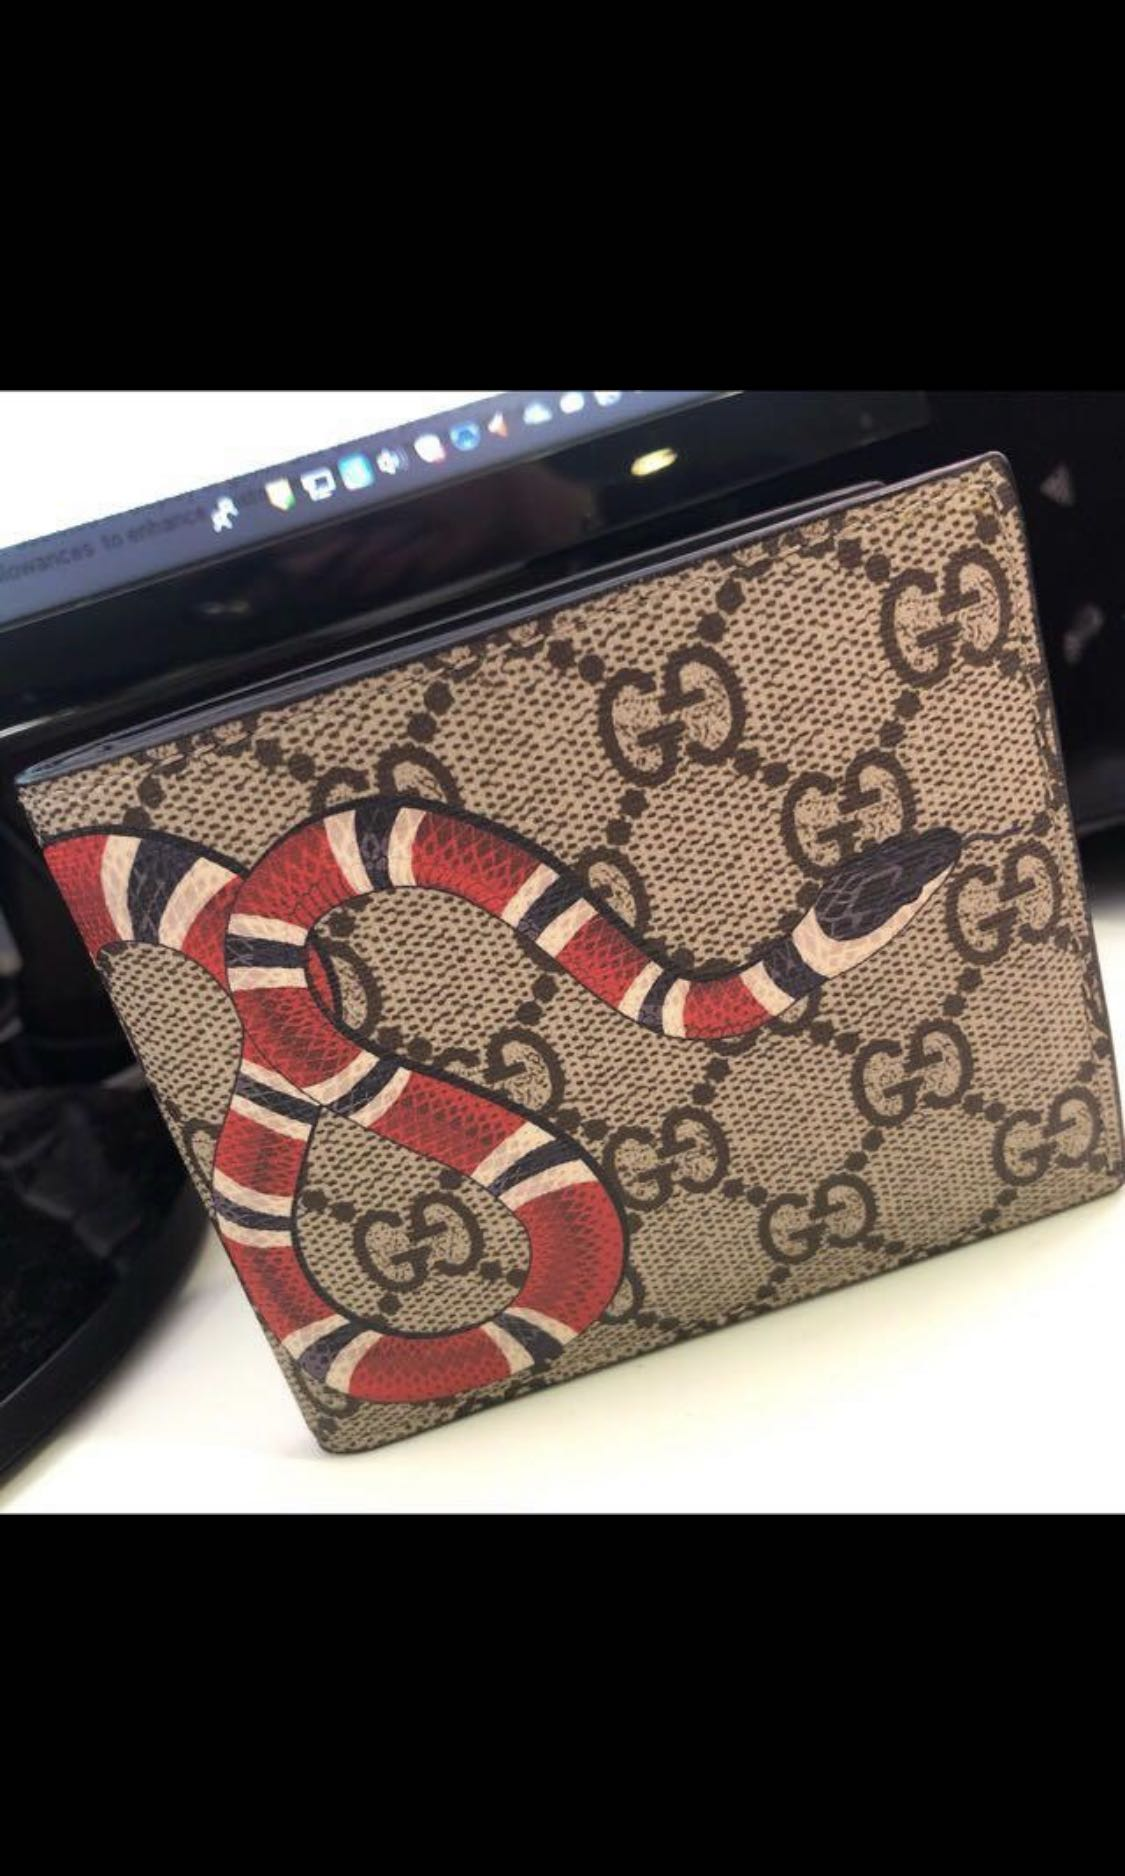 02c18f979ff2 Gucci Kingsnake print supreme GG, Men's Fashion, Bags & Wallets ...